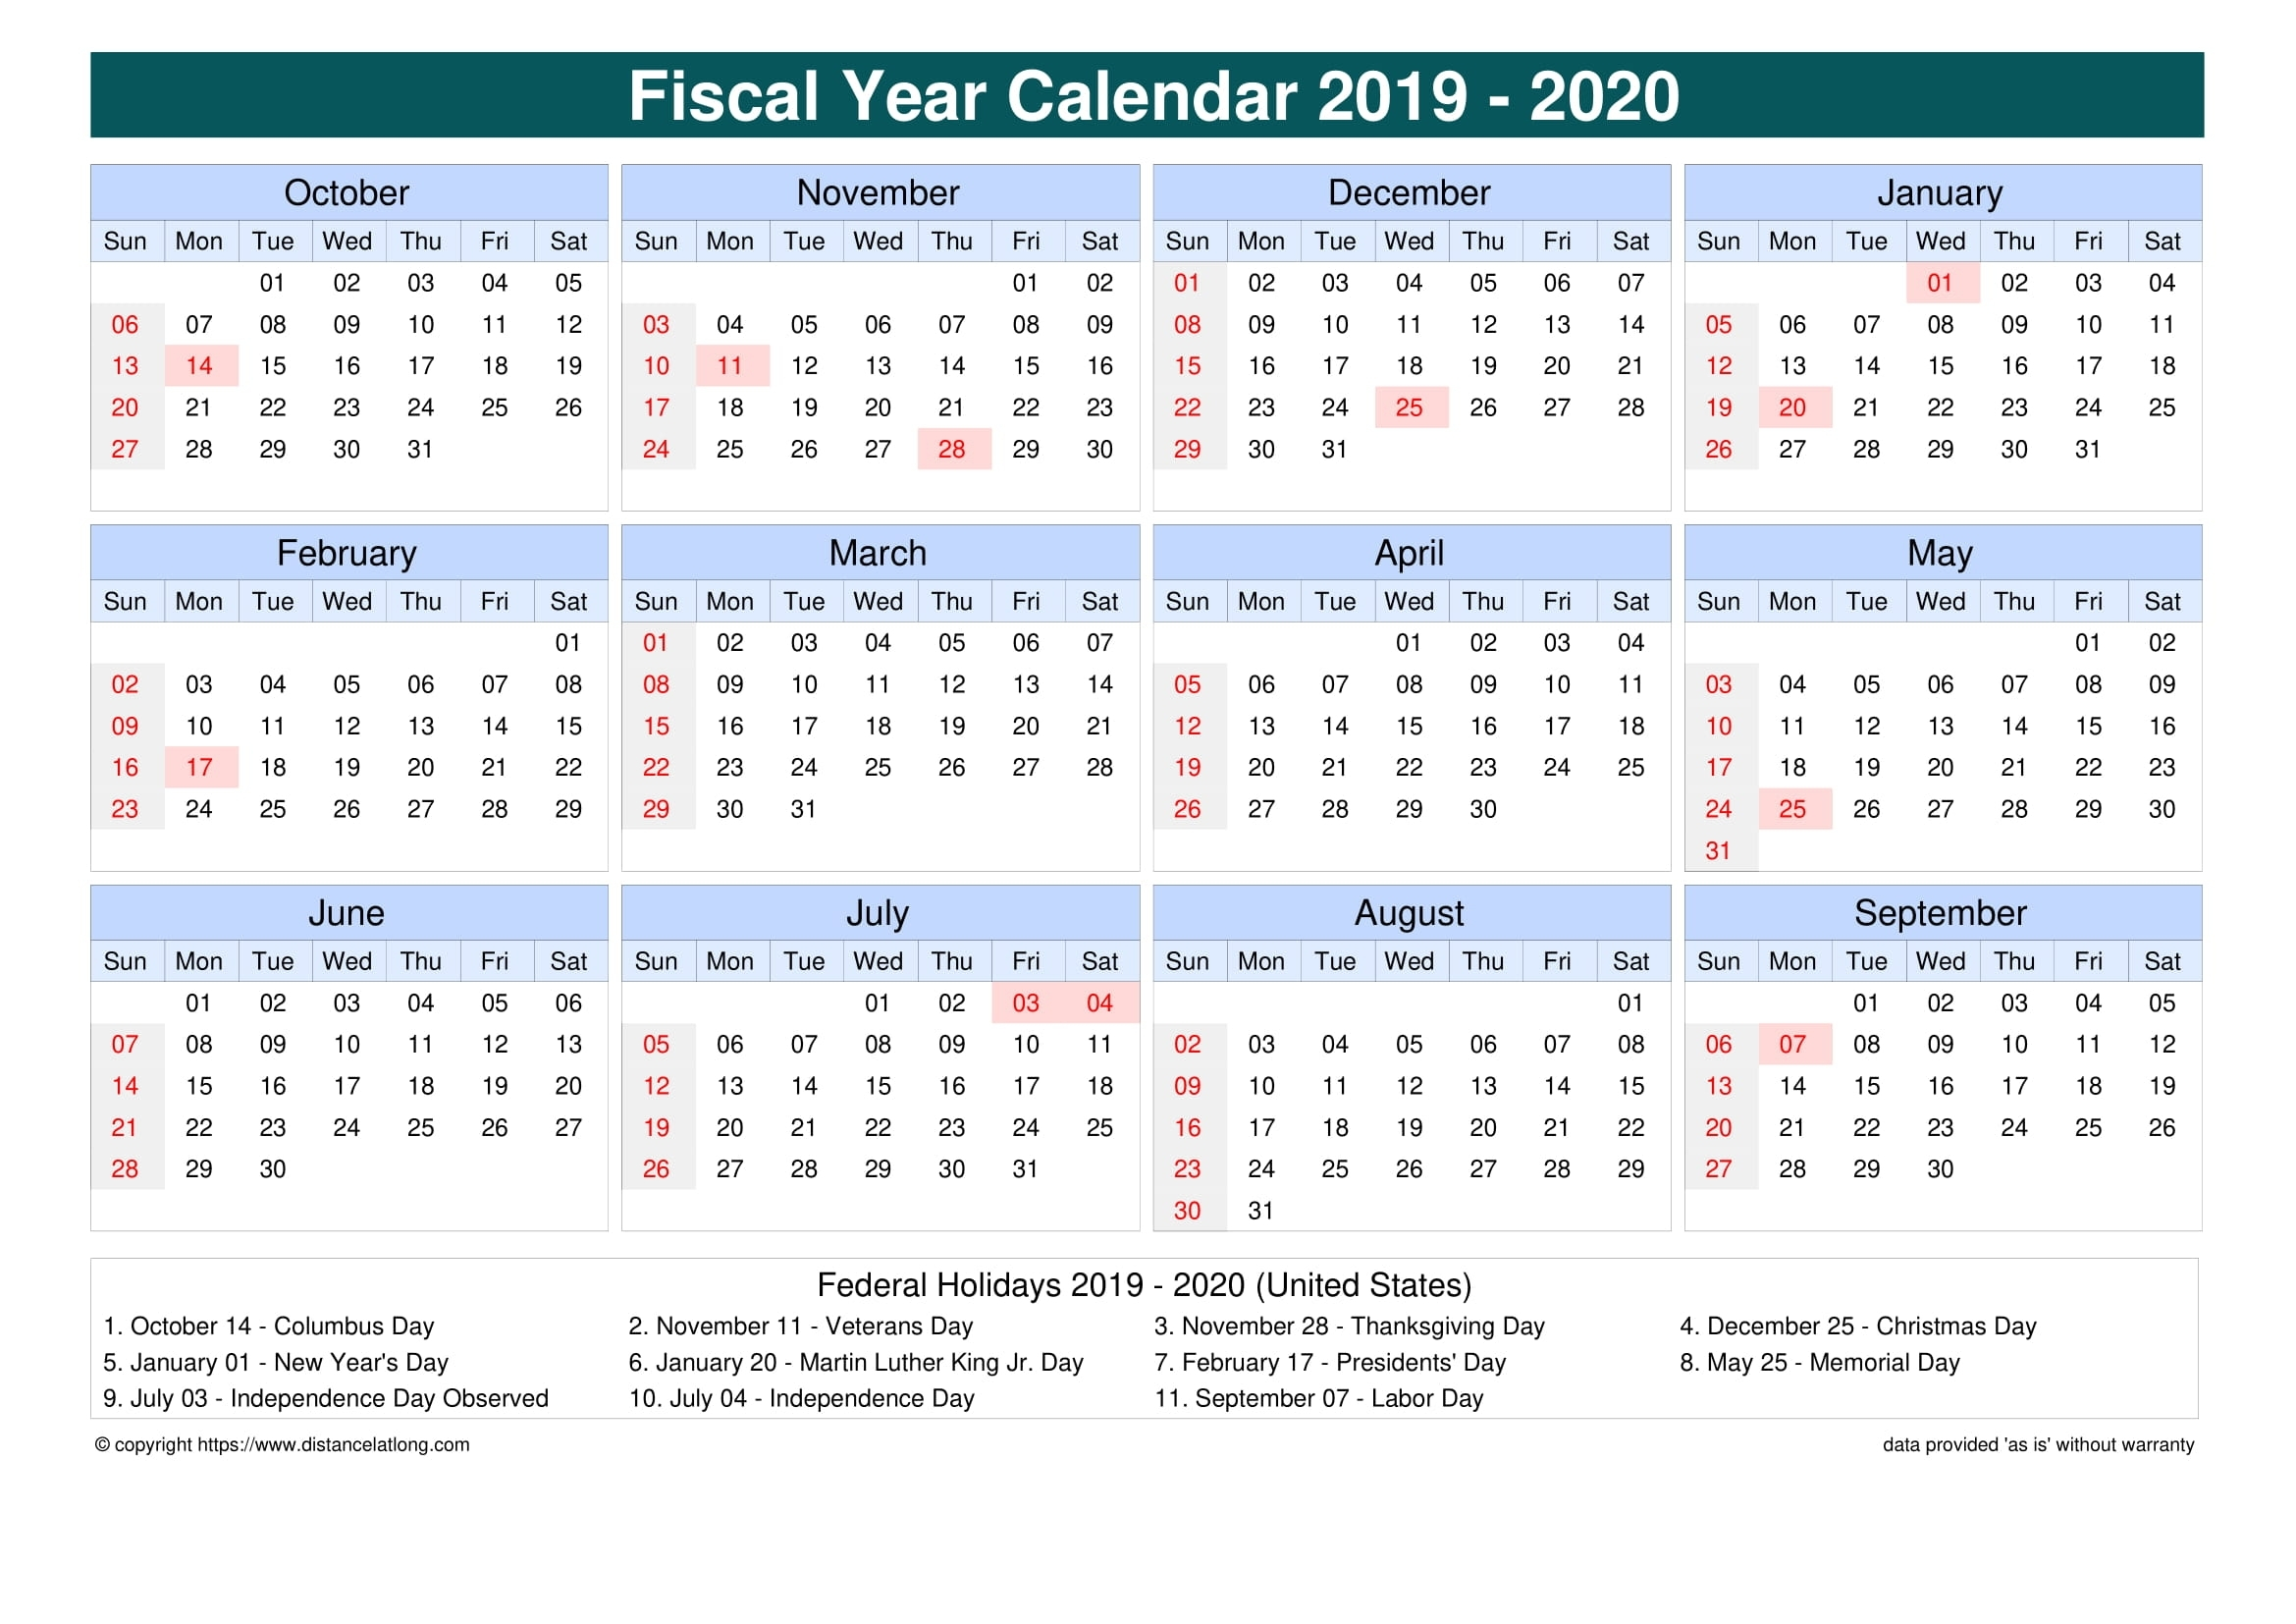 Fiscal Year 2019-2020 Calendar Templates, Free Printable intended for Financial Year Calendar 2019 2020